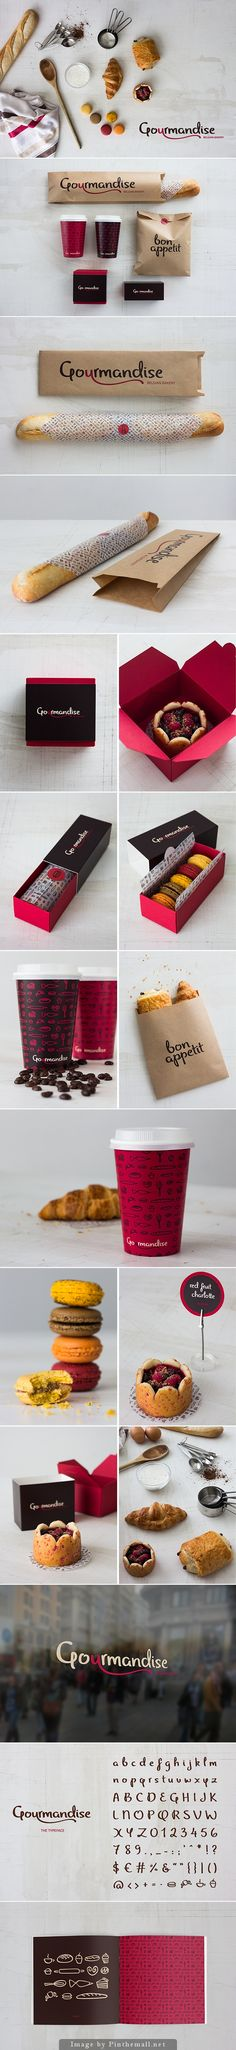 Gourmandise Belgian Bakery on Behance (no link sorry) PD